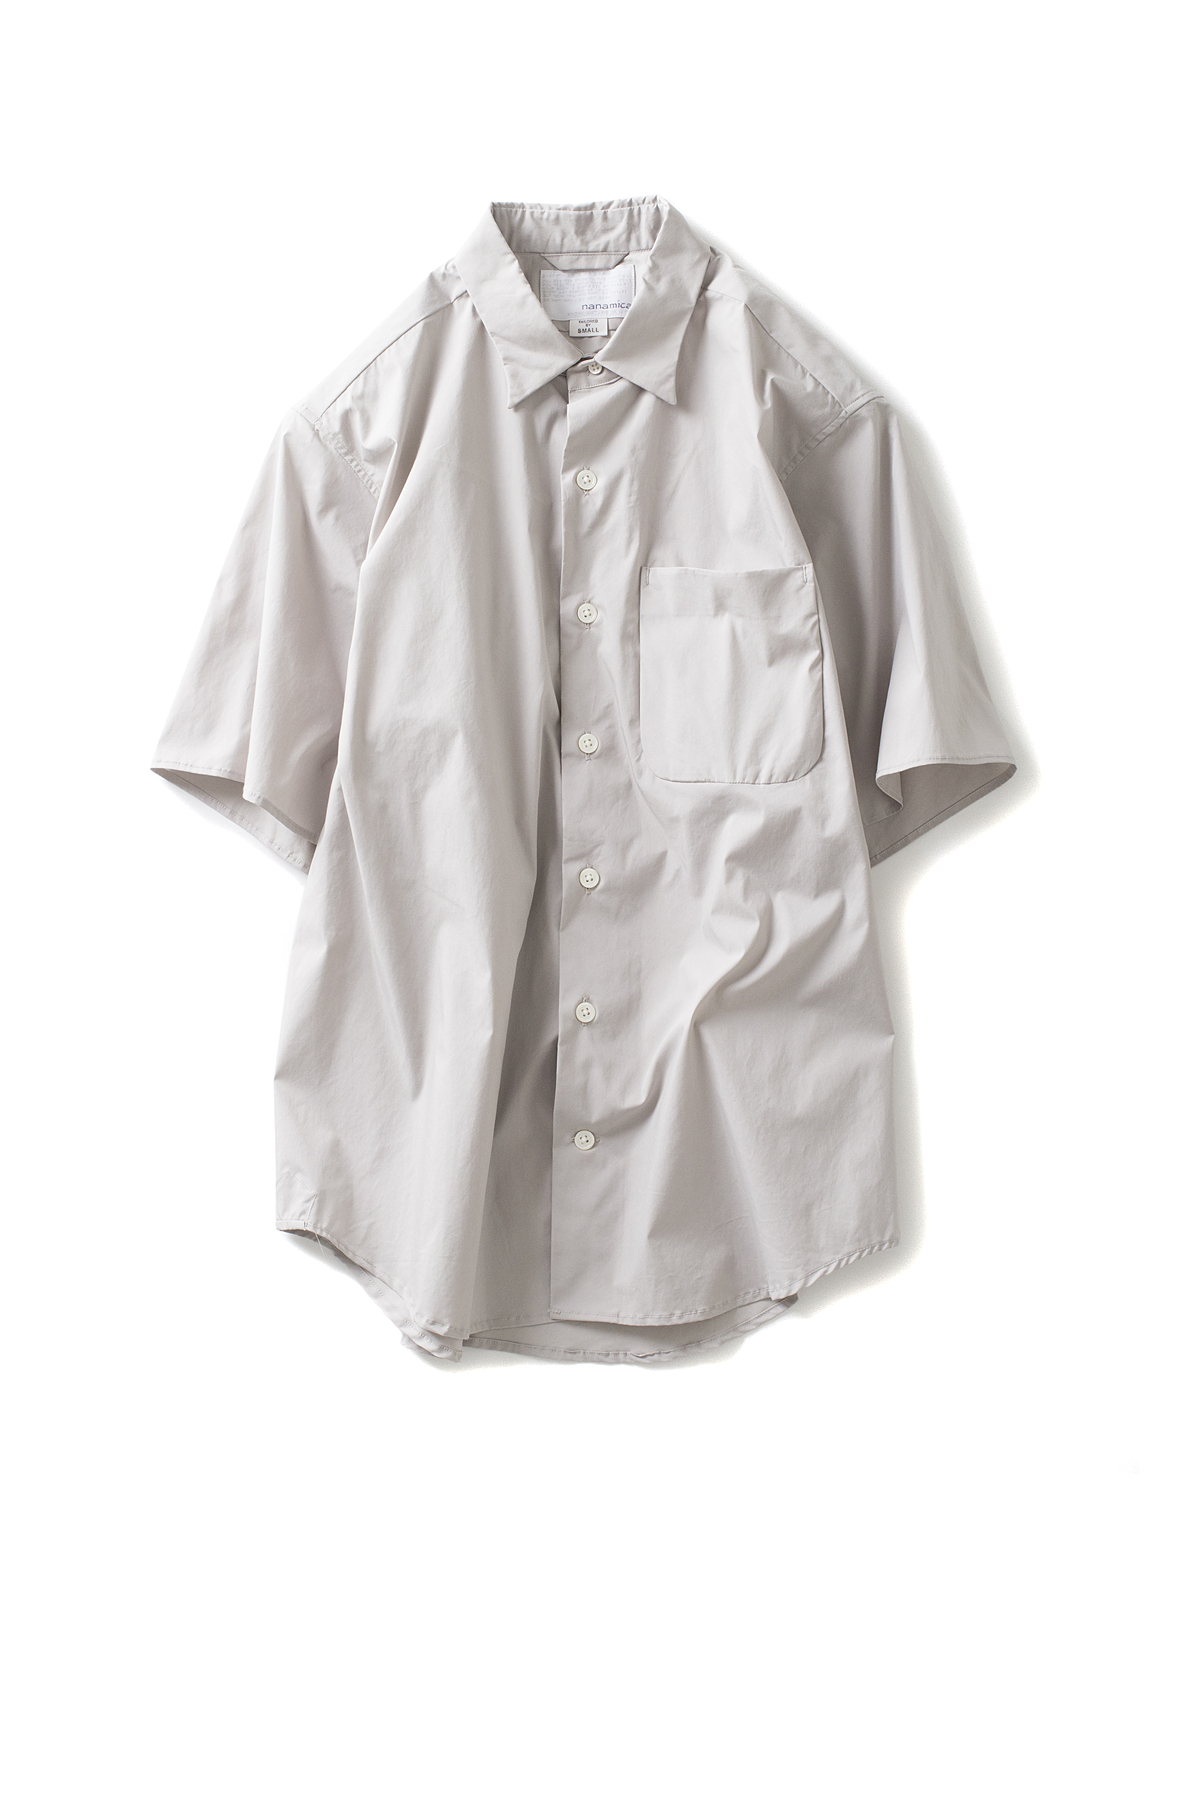 nanamica : Wind Half Sleeve Shirt (Light Beige)